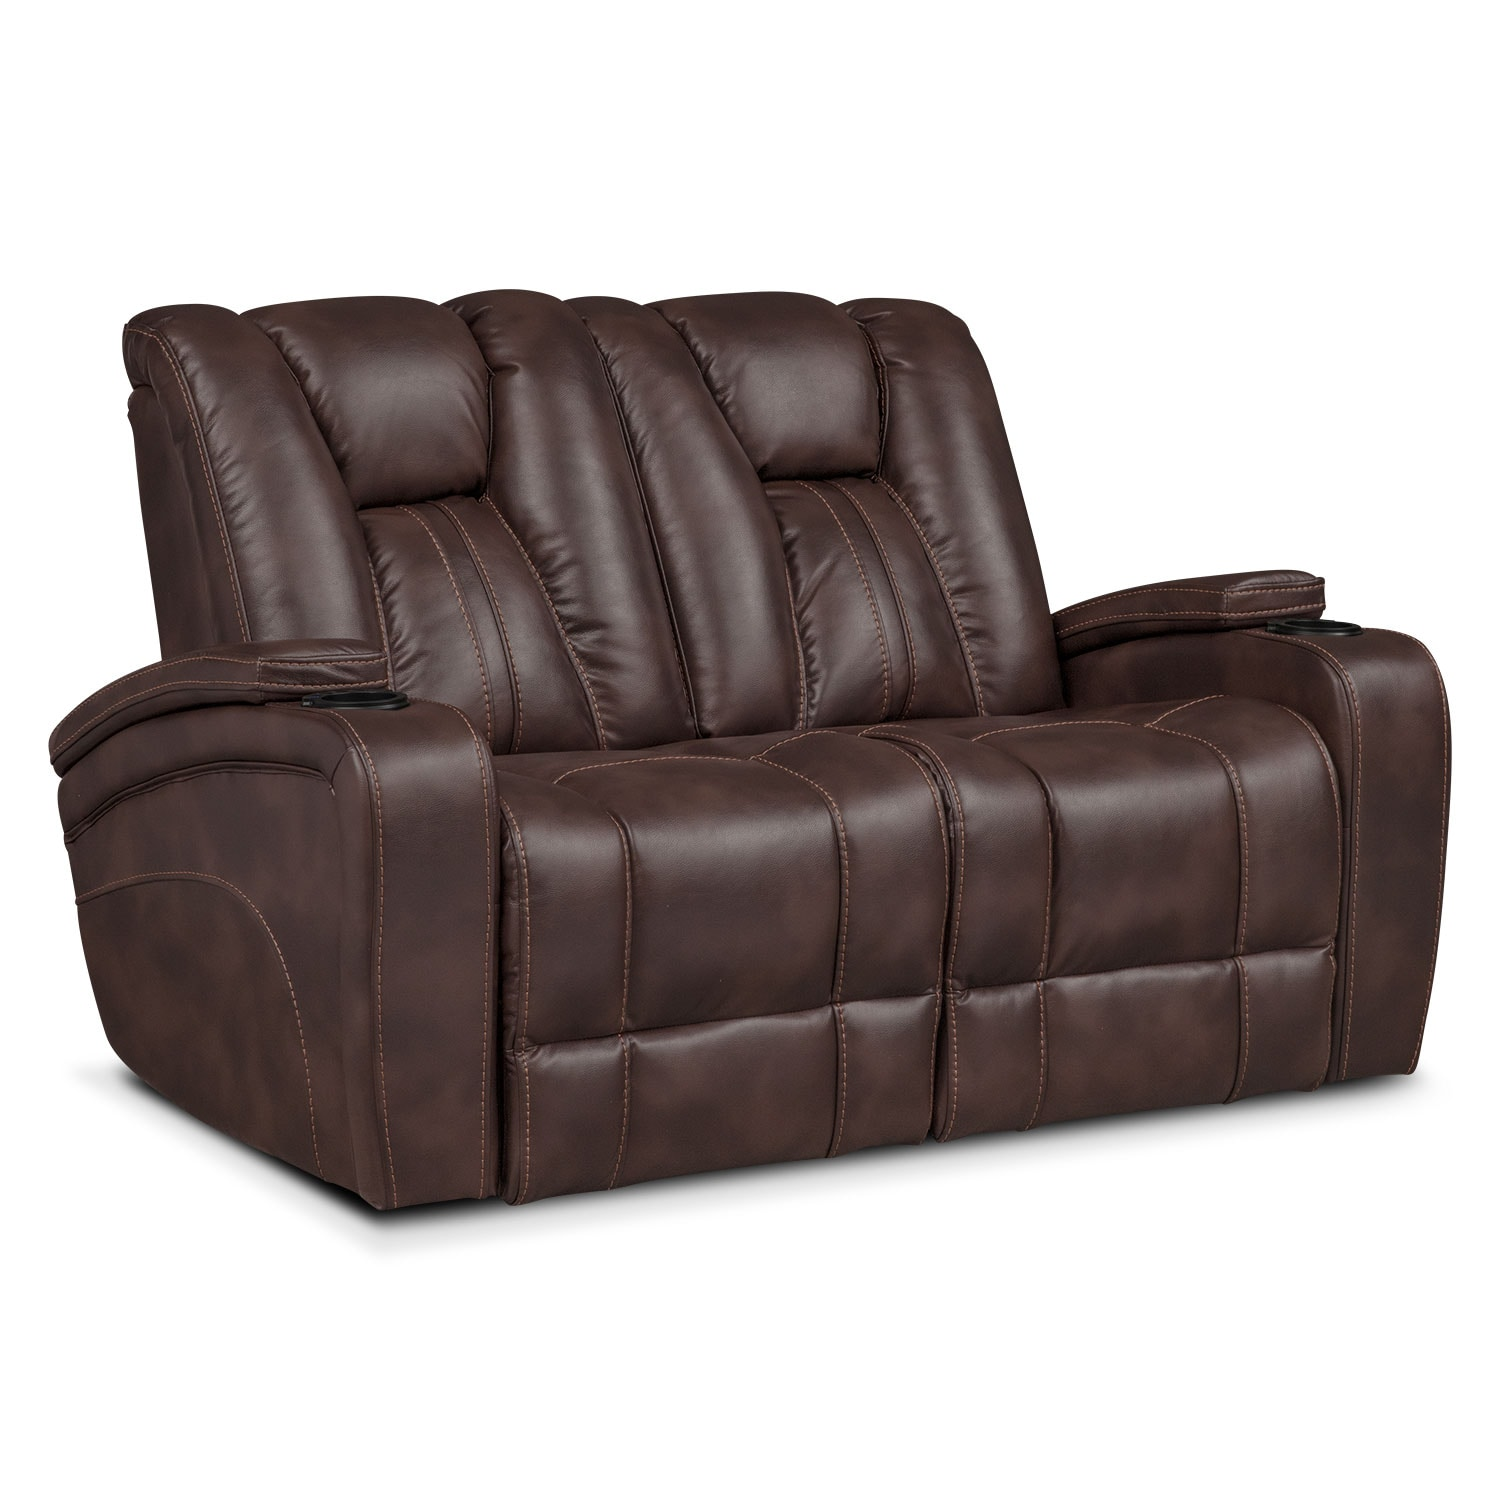 Pulsar Power Reclining Sofa, Power Reclining Loveseat And Power Recliner  Set   Brown